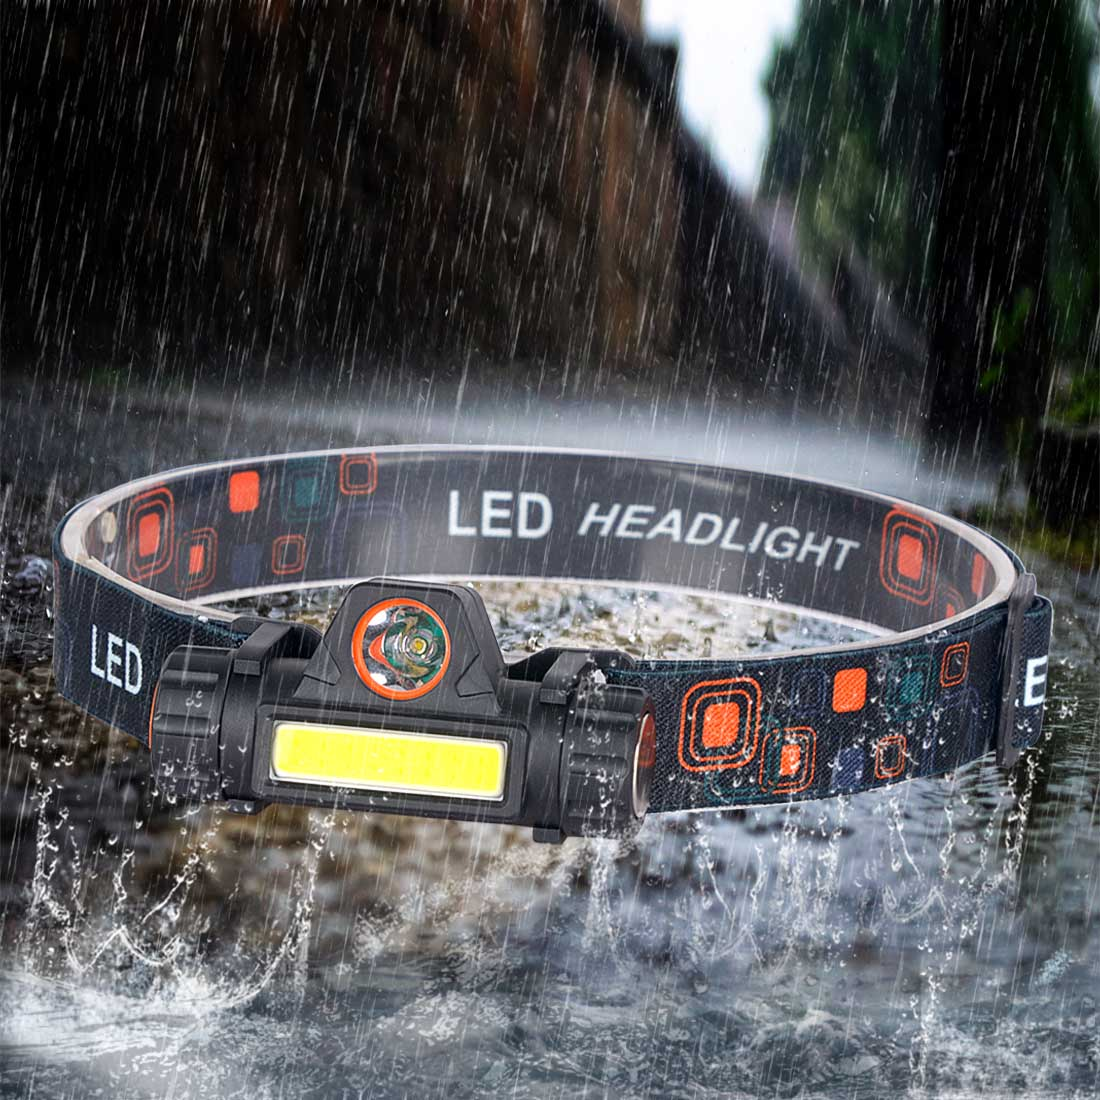 Built-in 18650 Battery LED Headlamp COB Work Light 2 Light Mode With Magnet Waterproof Headlight Suit For Fishing Head Lamp